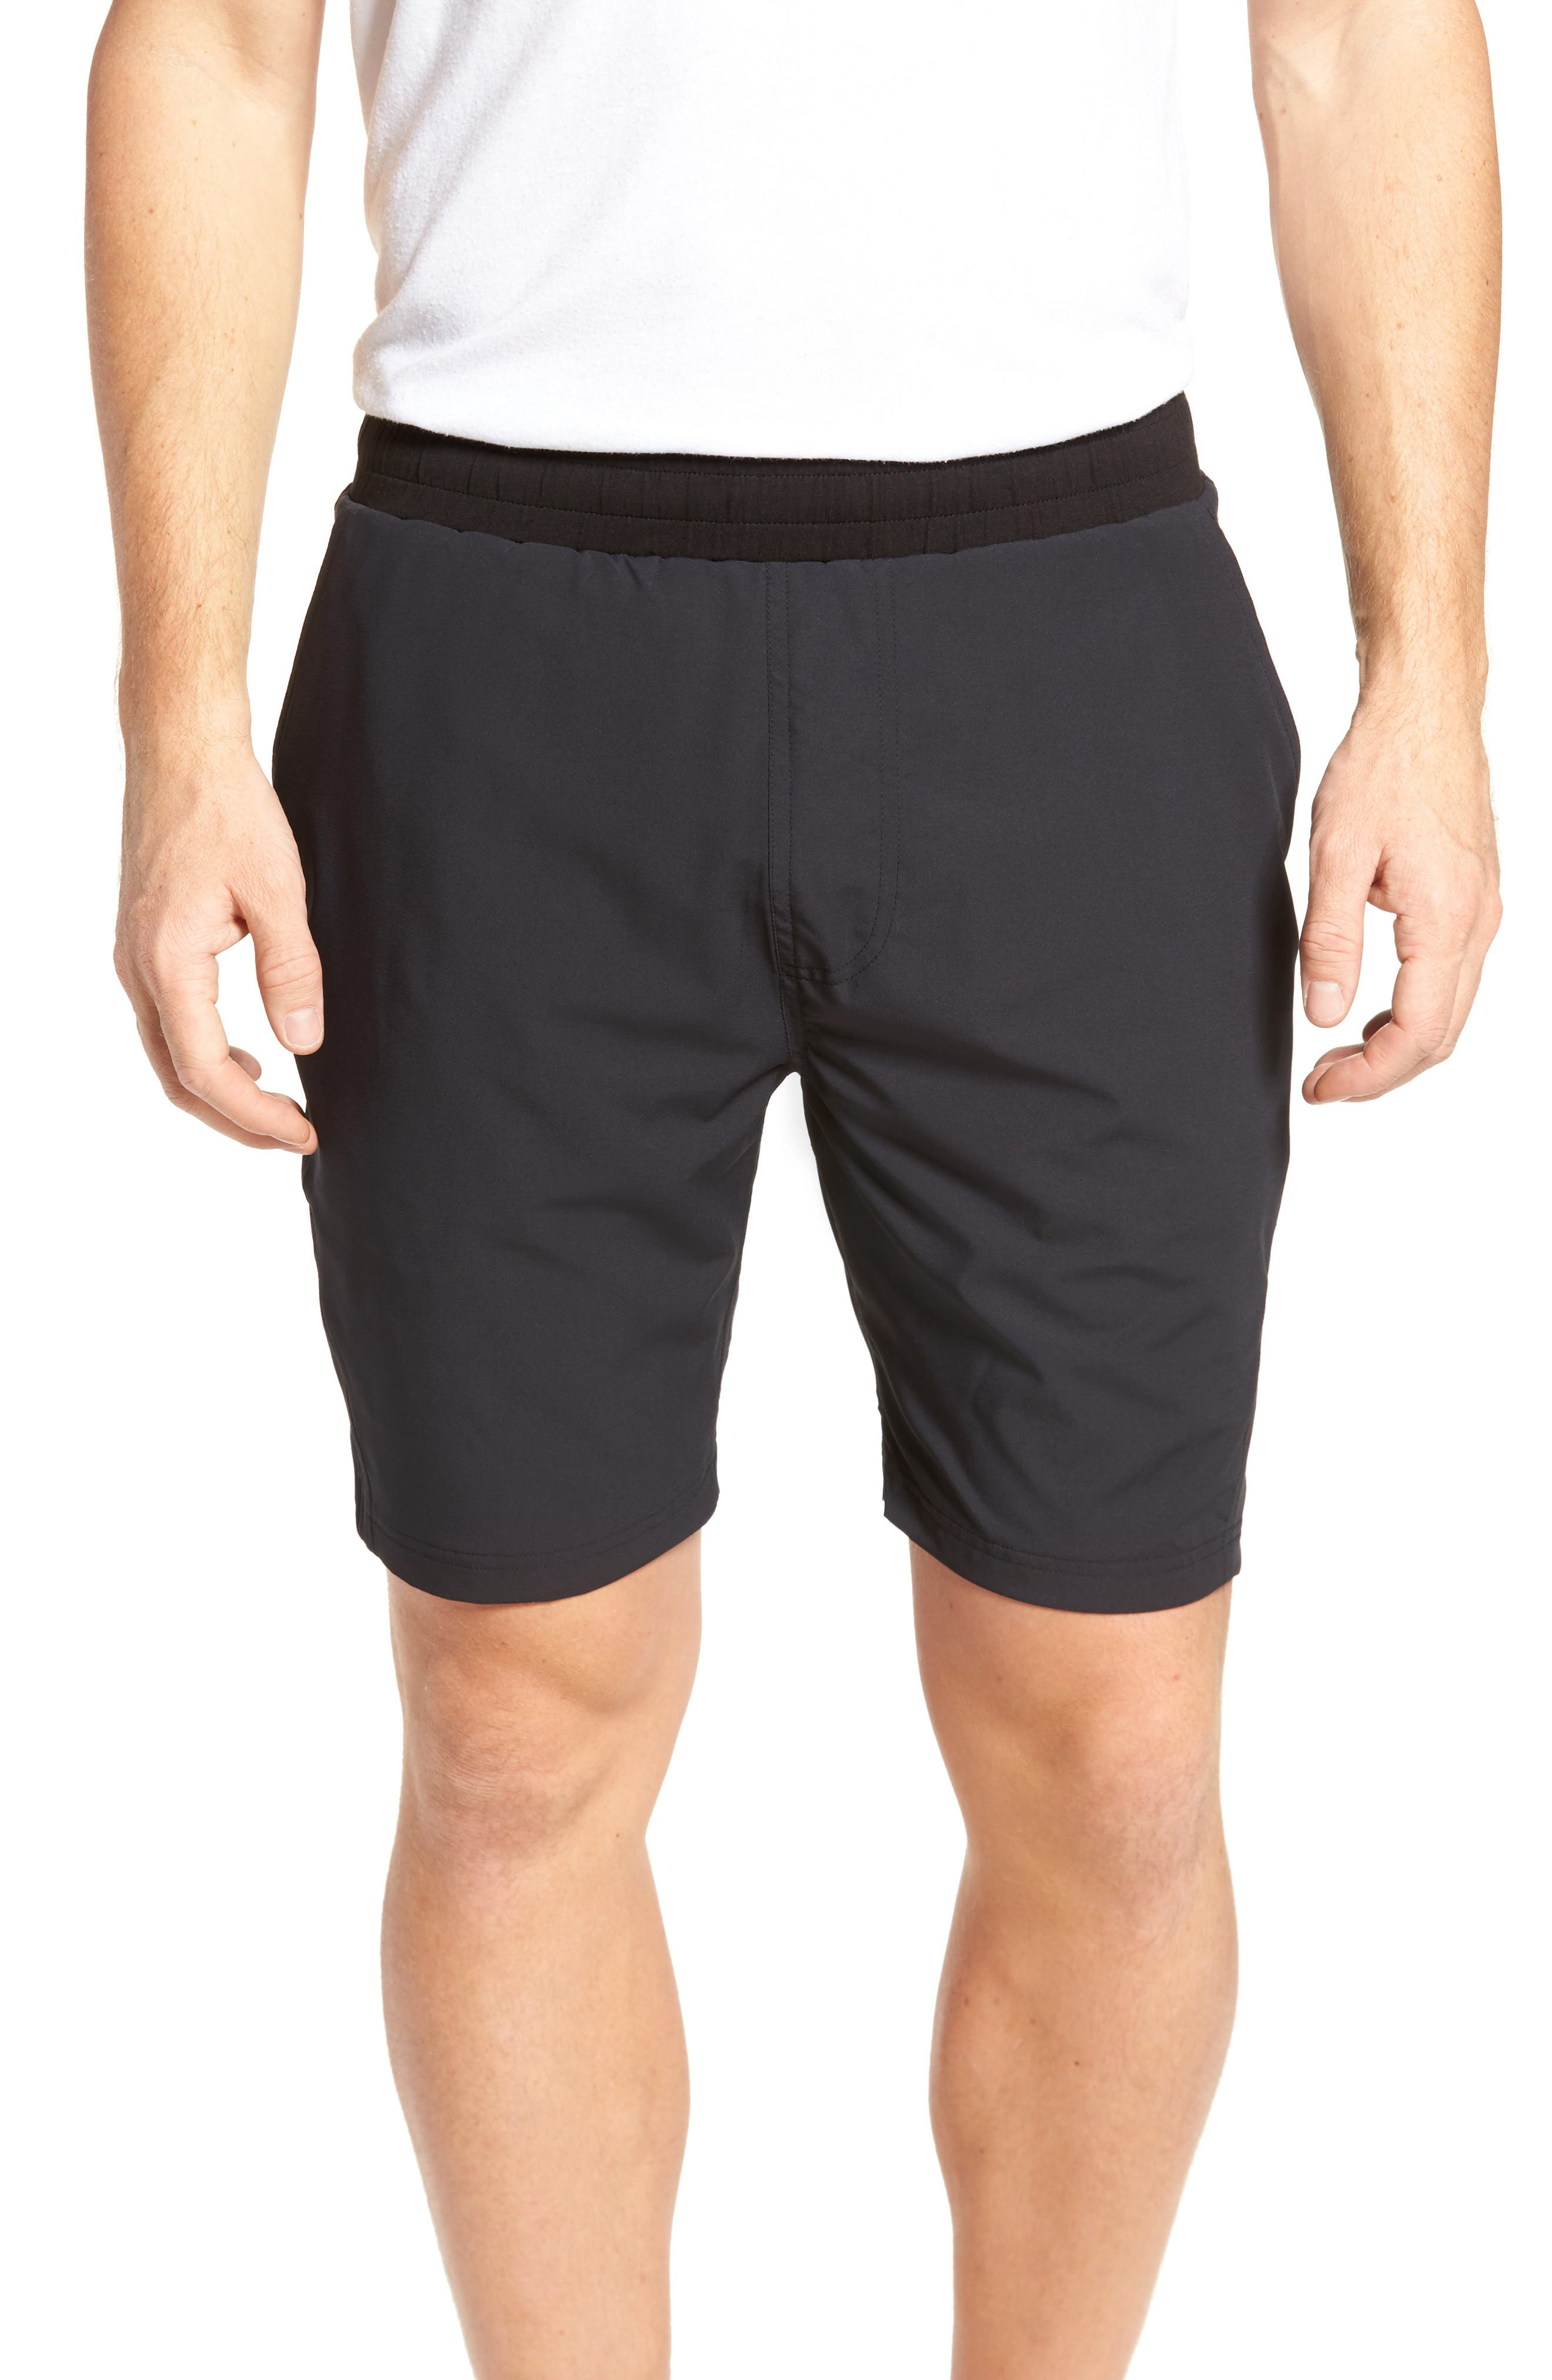 Tasc Performance Charge Water Resistant Athletic Shorts, Black